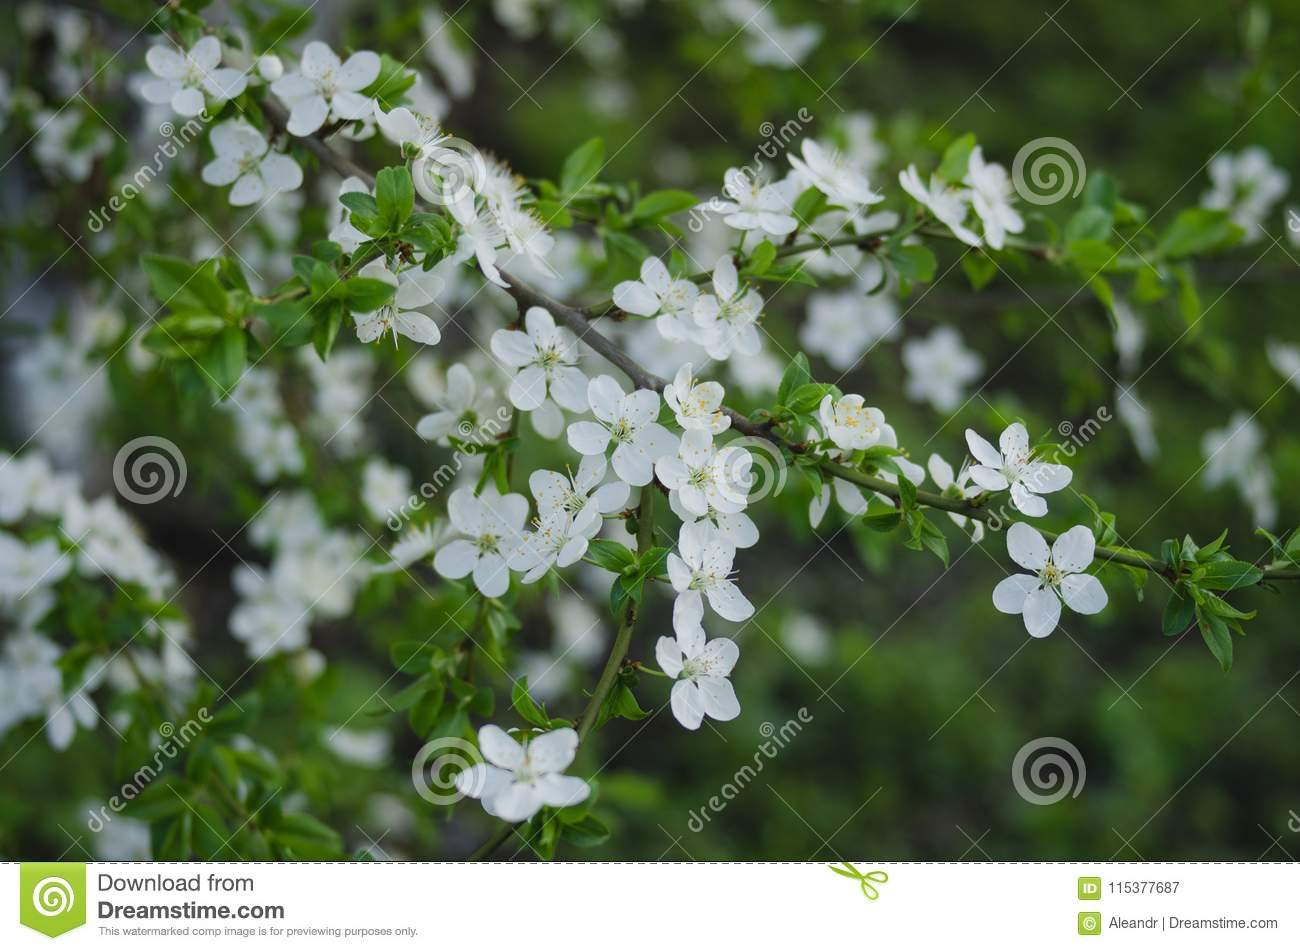 Beautiful spring trees with white flowers stock image image of closeup view of beautiful spring trees with fresh young white flowers outdoors horizontal color photography mightylinksfo